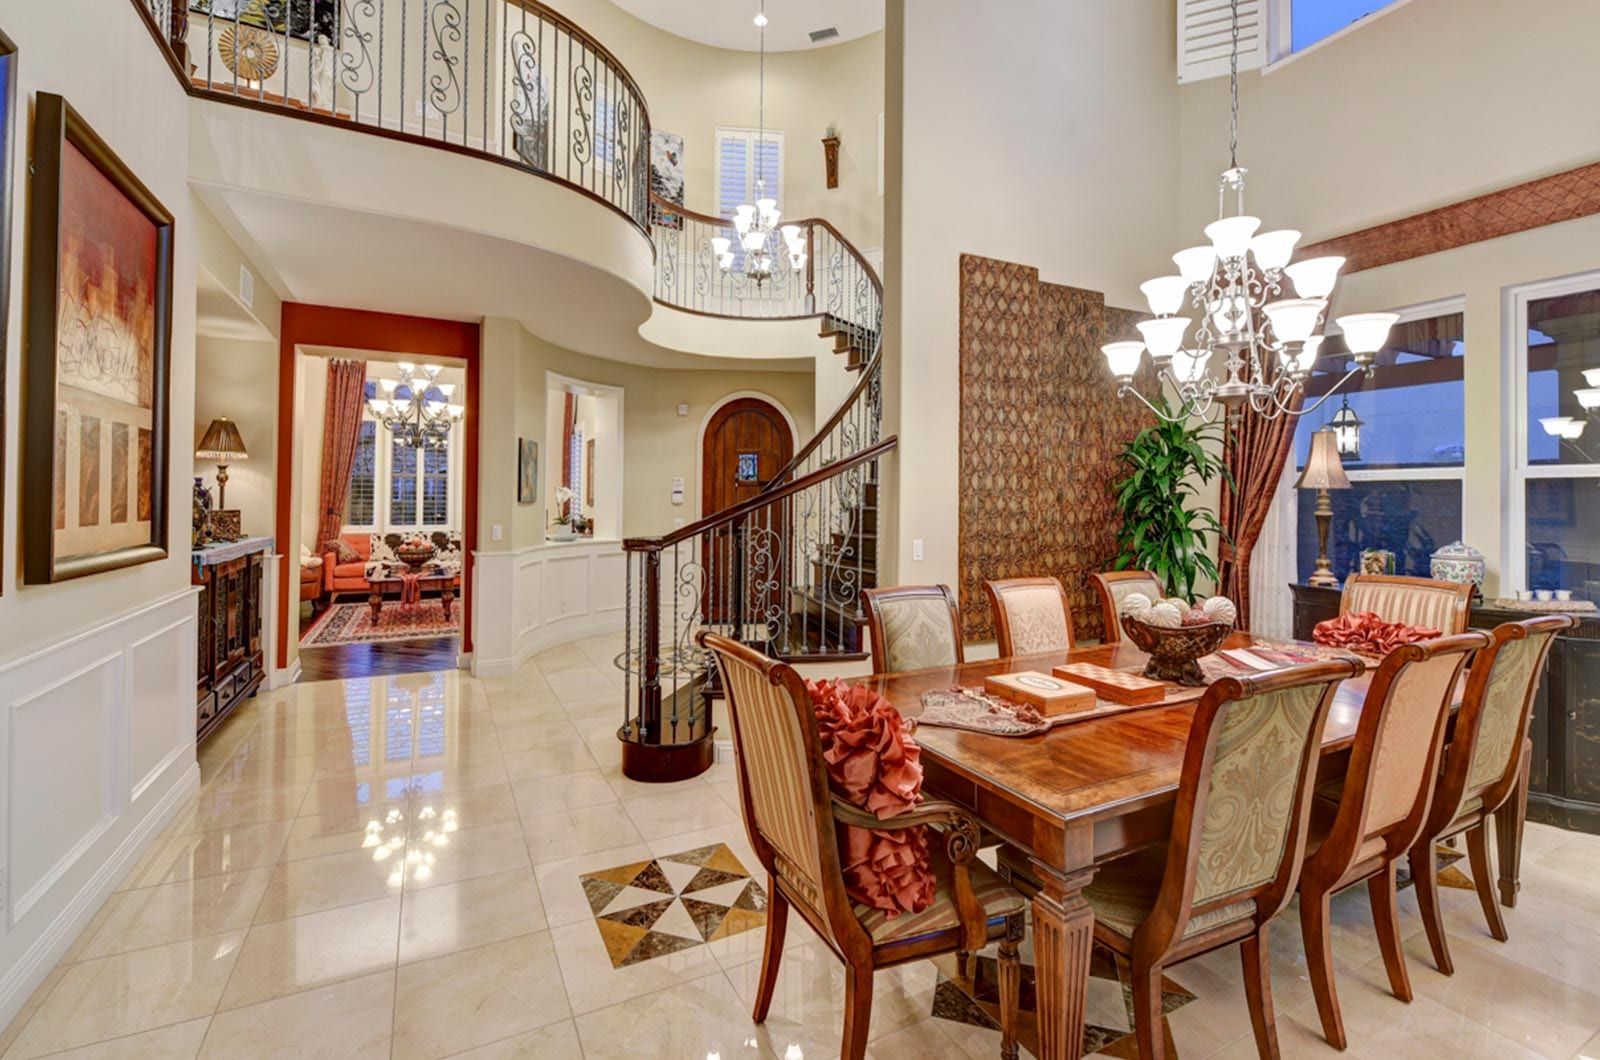 Feat-Luxury-Real-Estate-Photography-Company-Orange-County-Los-Angeles